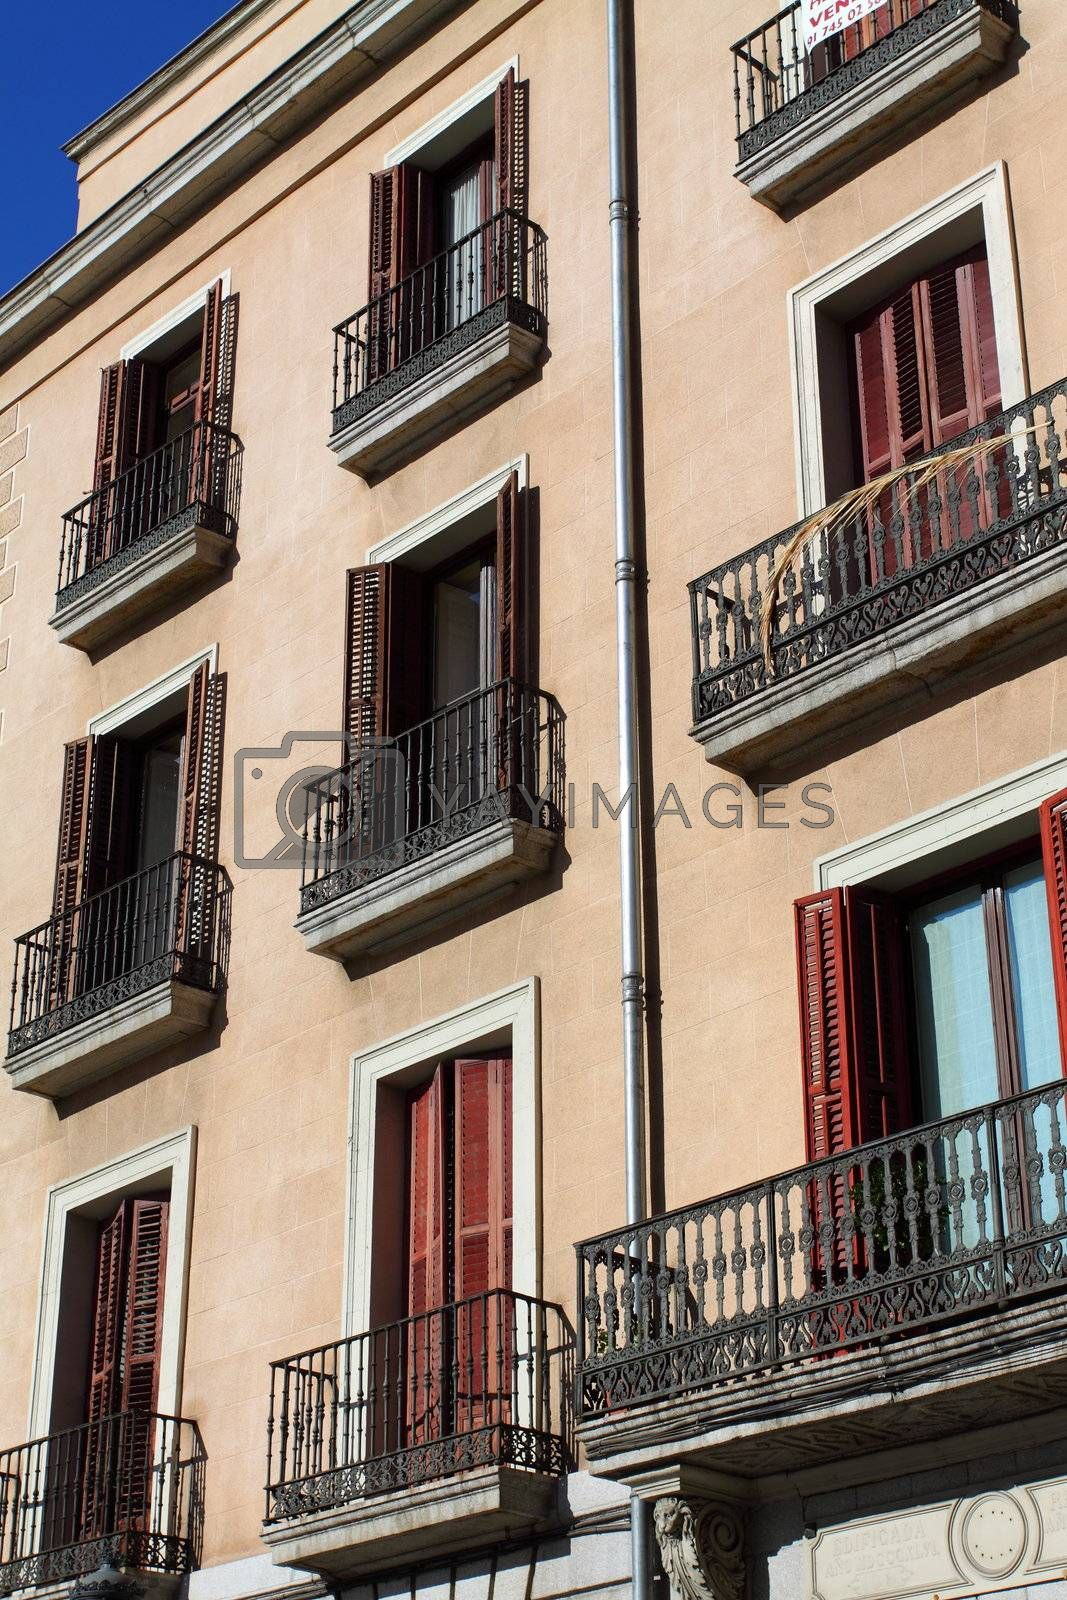 Mediterranean architecture in Spain. Old apartment building in Madrid.